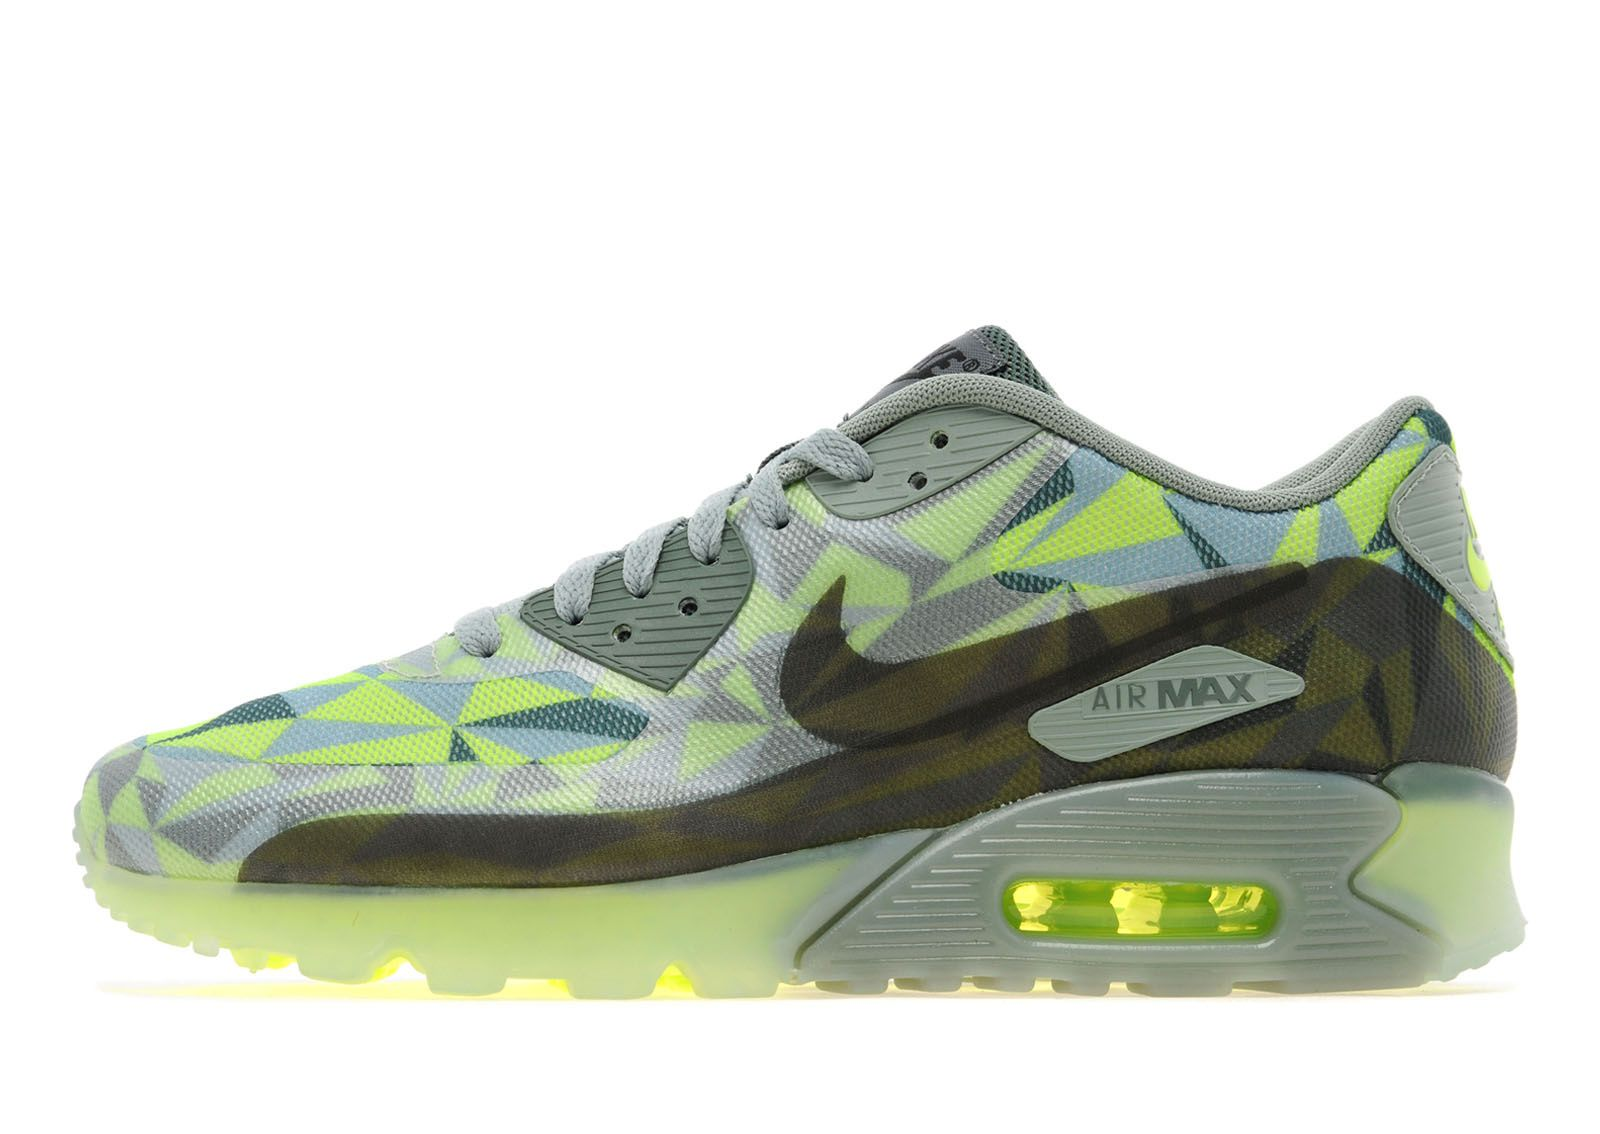 beqlb Nike Air Max 90 Ice | JD Sports